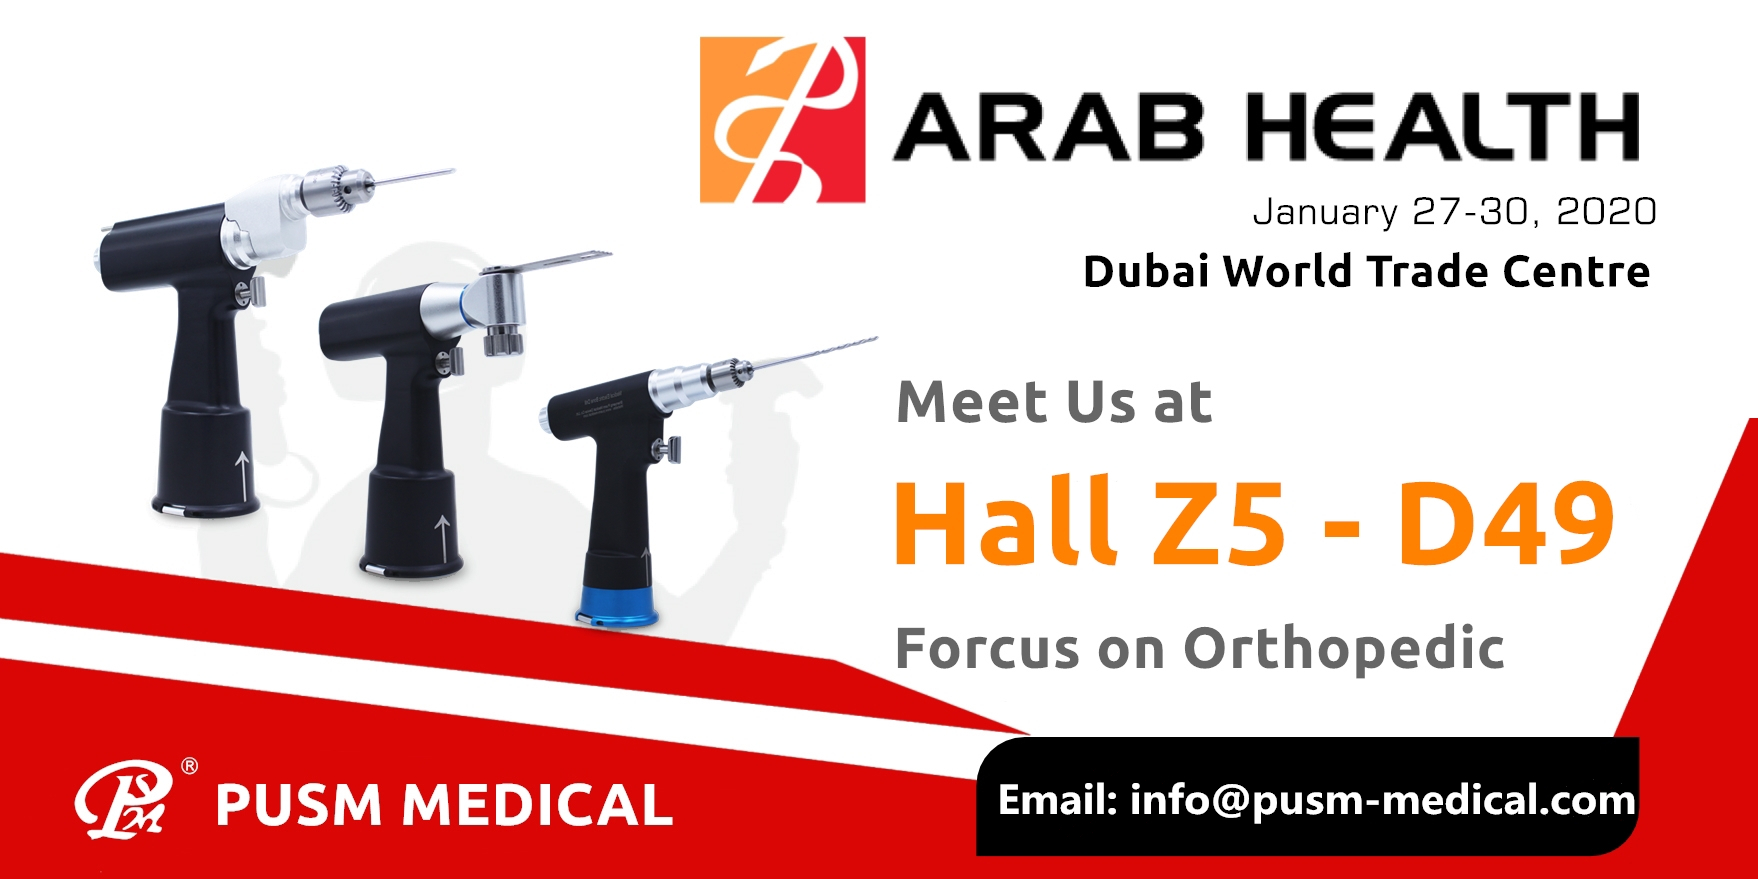 Arab Health Invitation from PUSM Medical